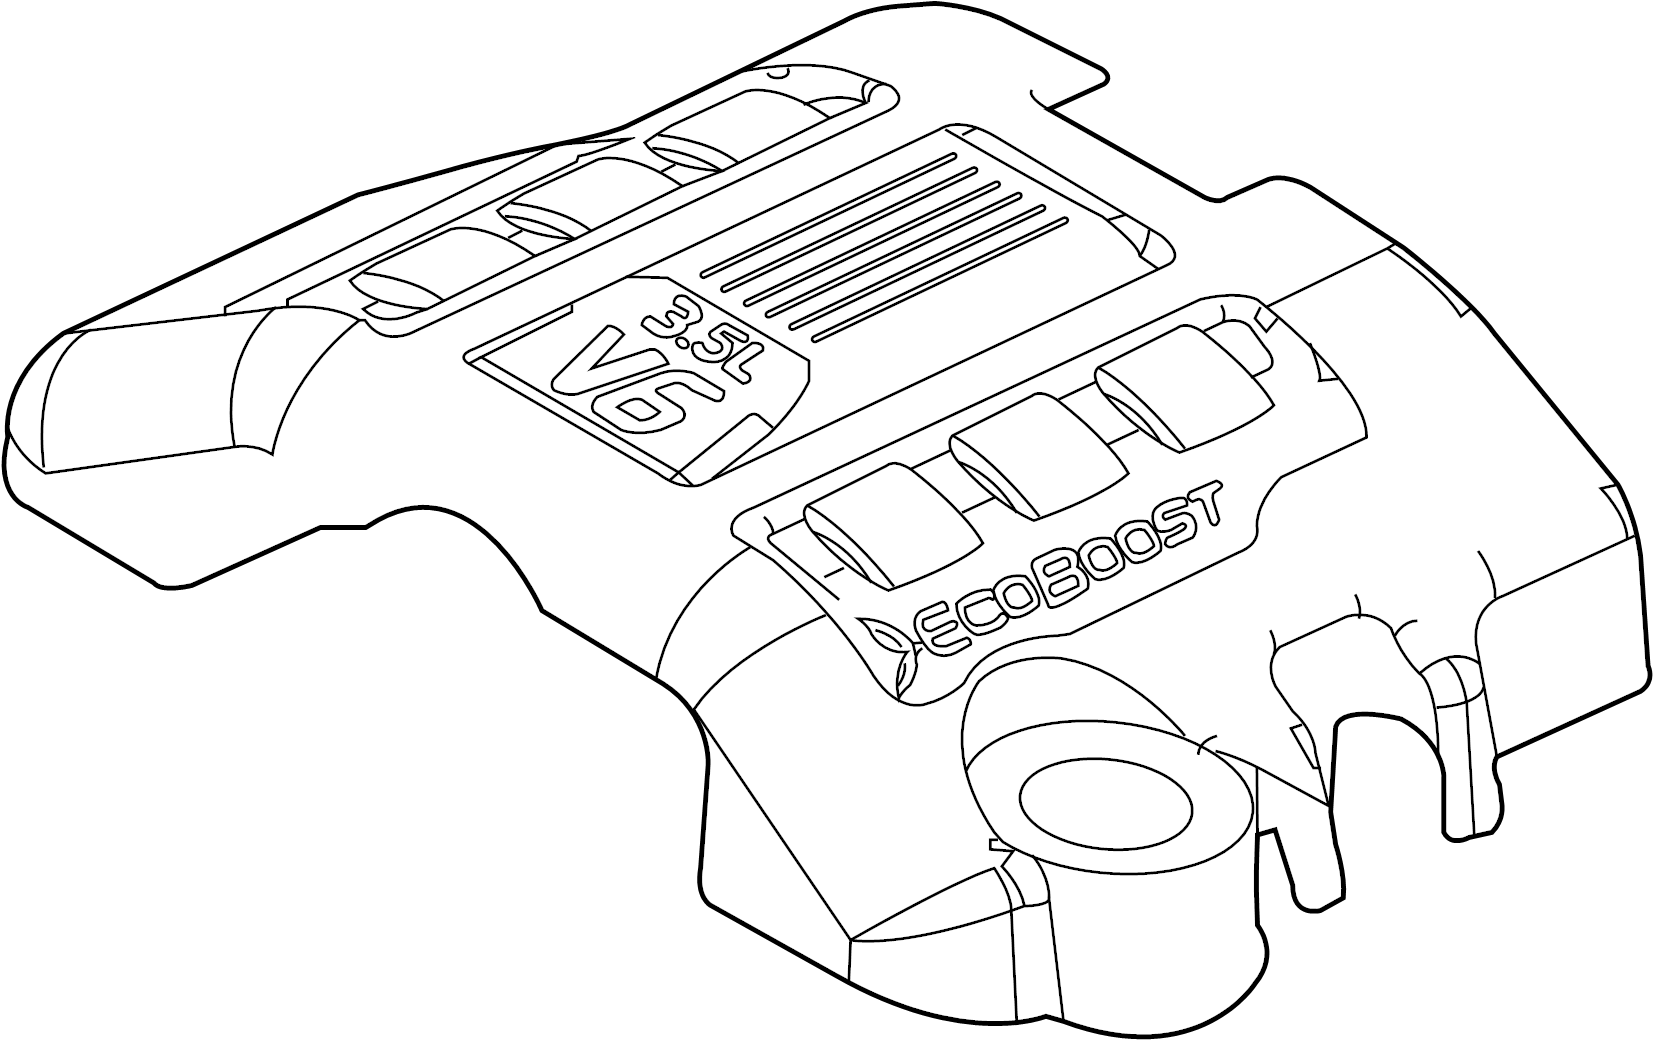 96 buick century 3 1 engine diagram